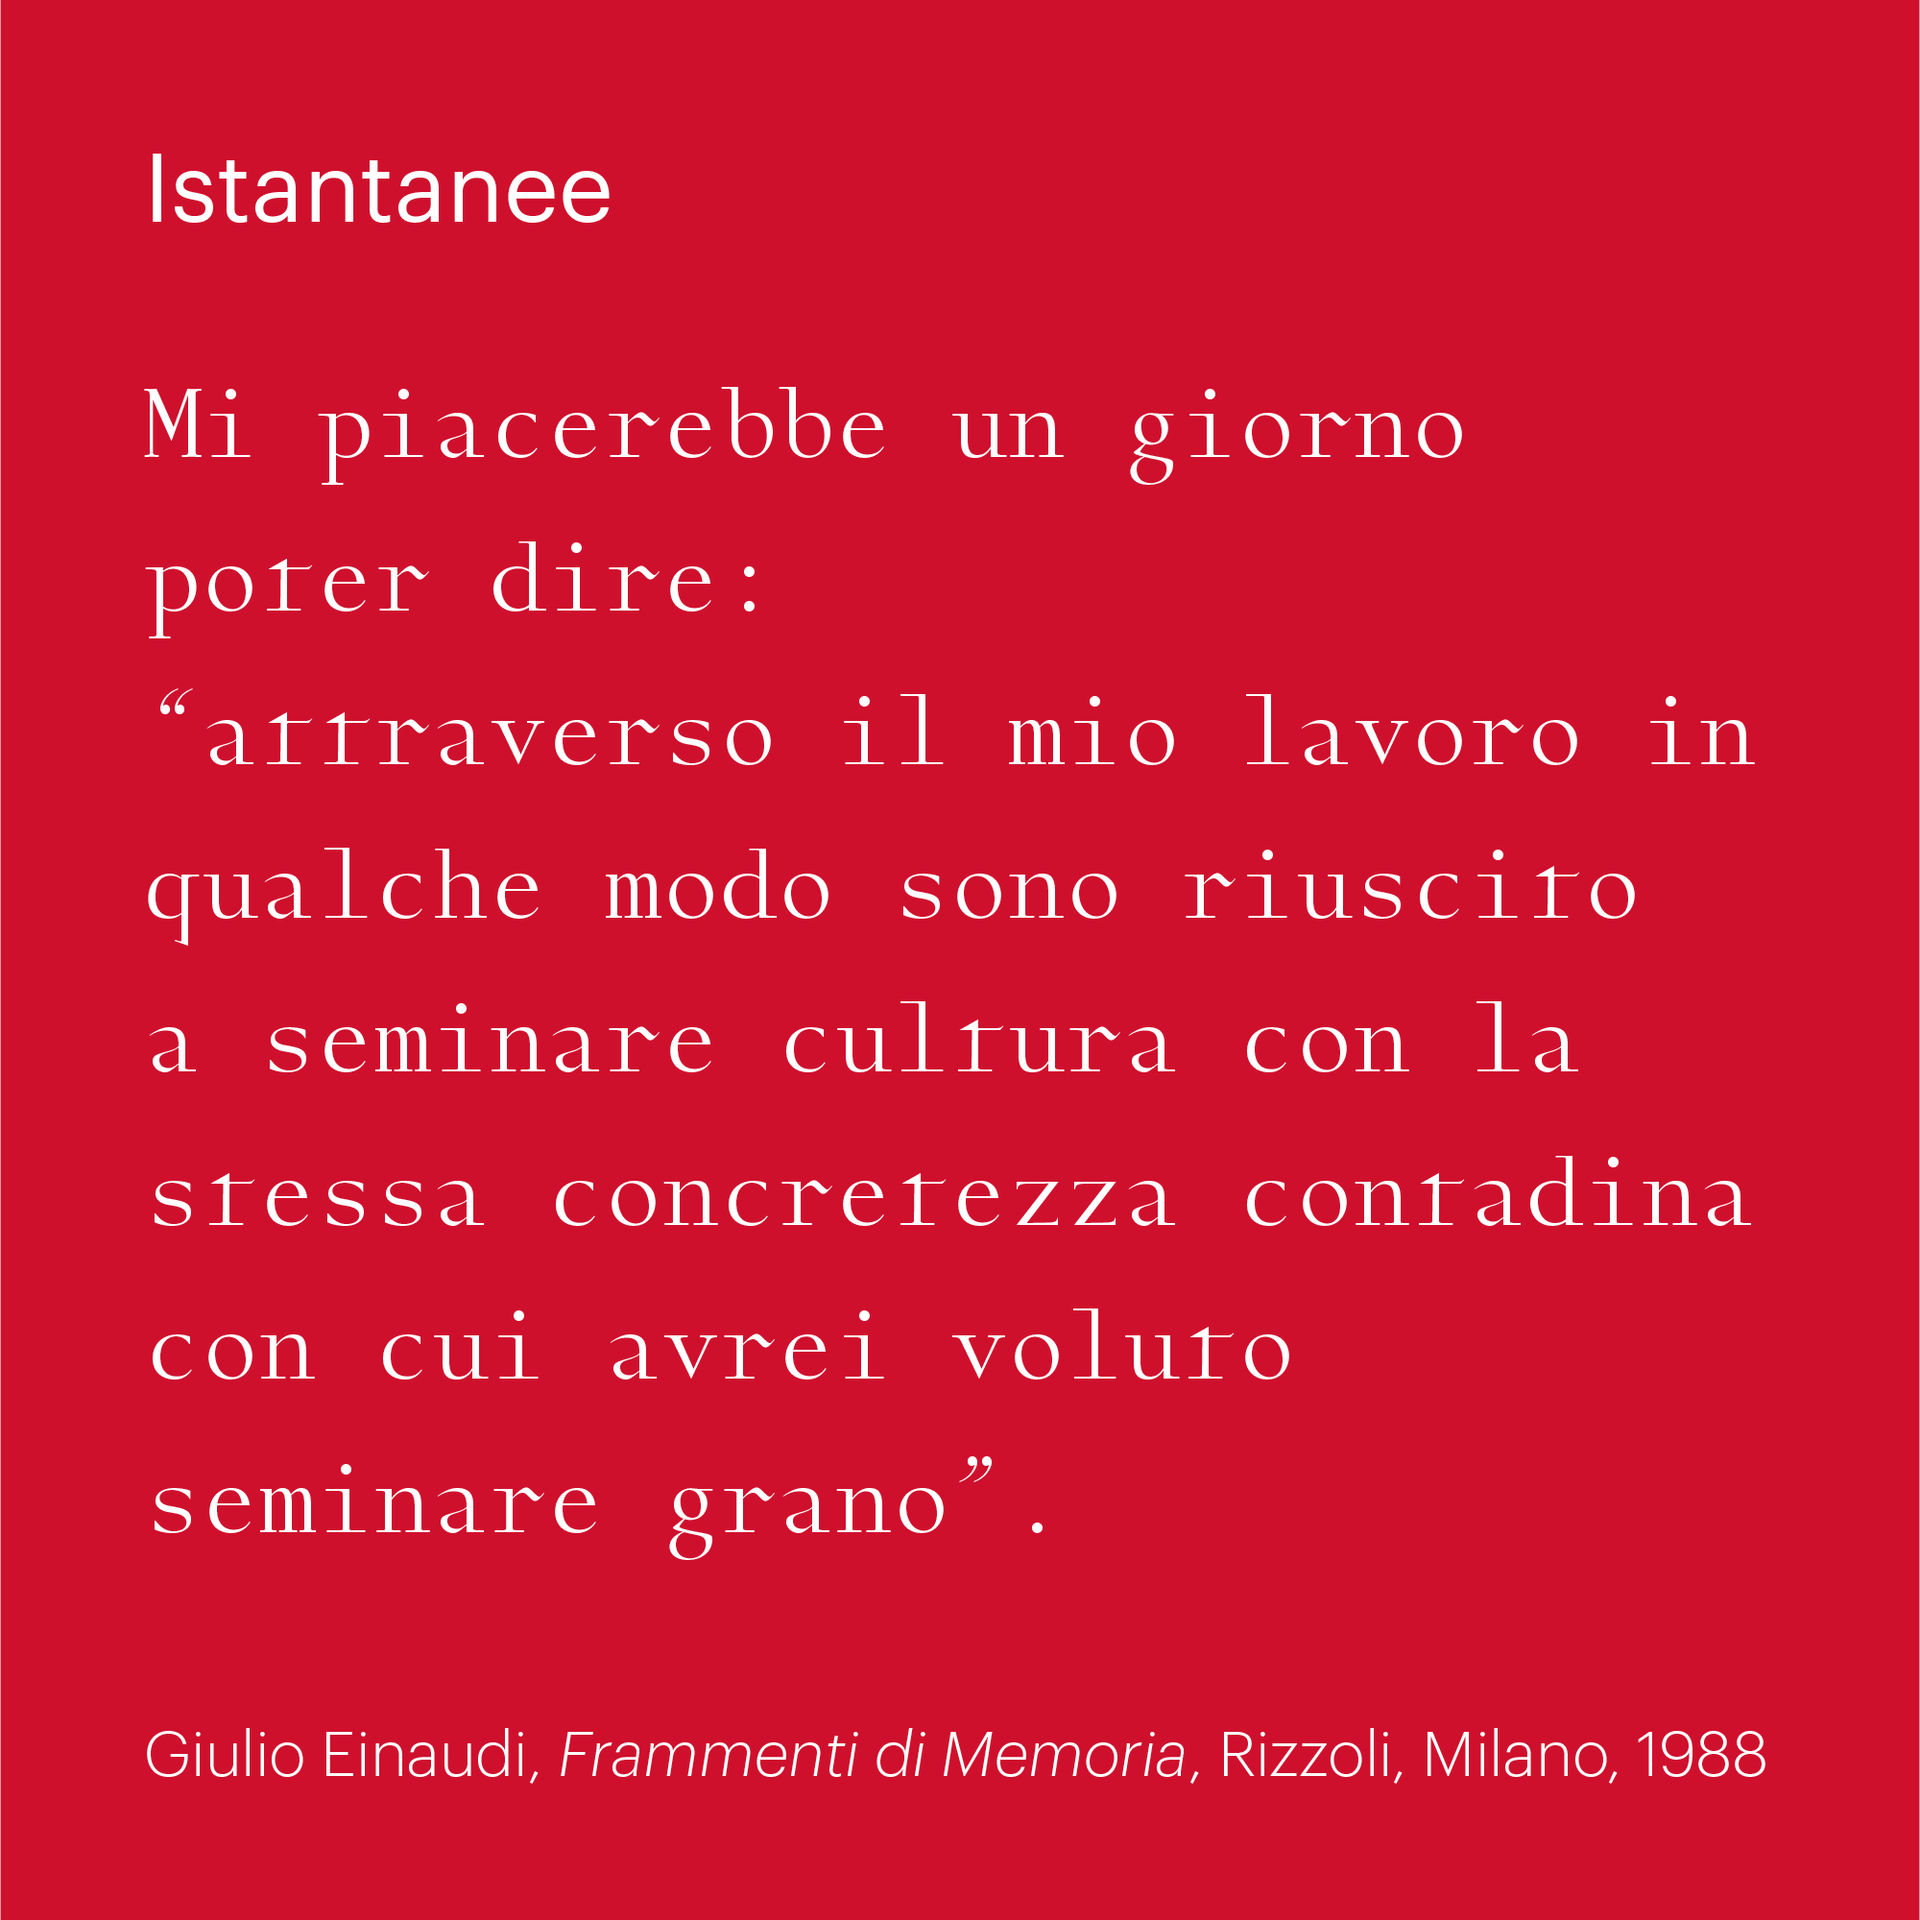 Istantanee – 25 years